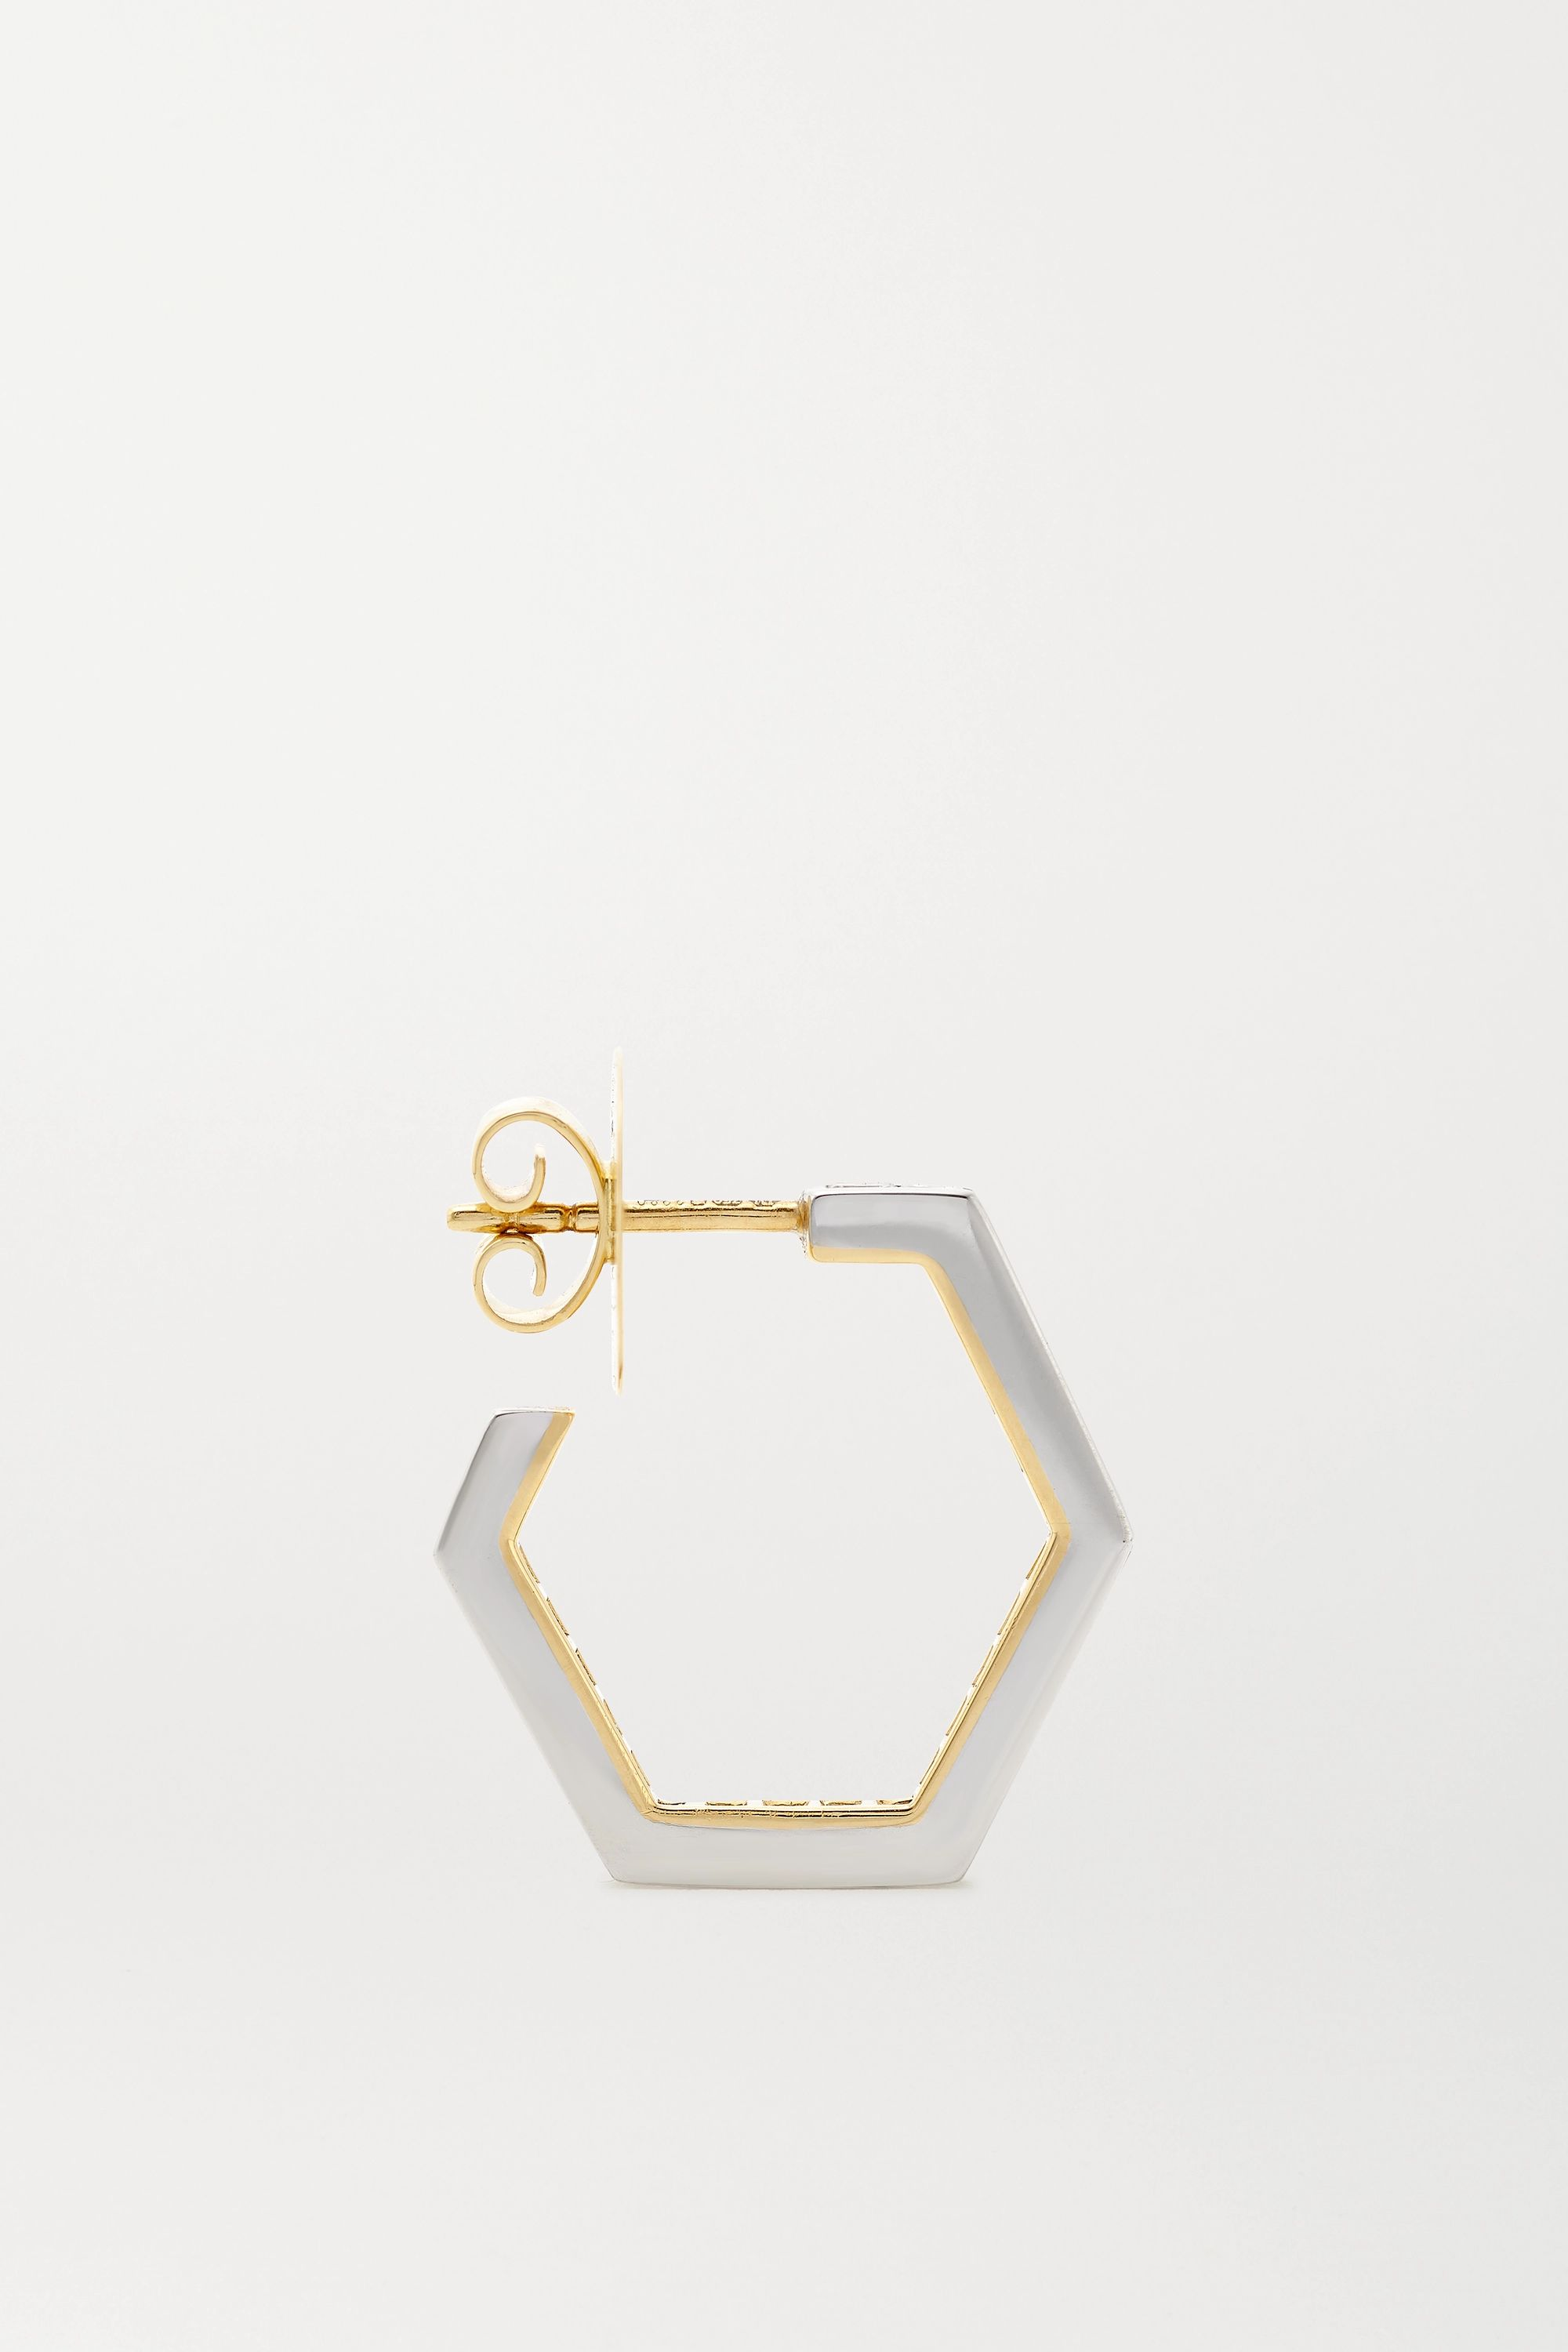 Jessica McCormack Hex Hoop 18-karat white and yellow gold diamond earrings